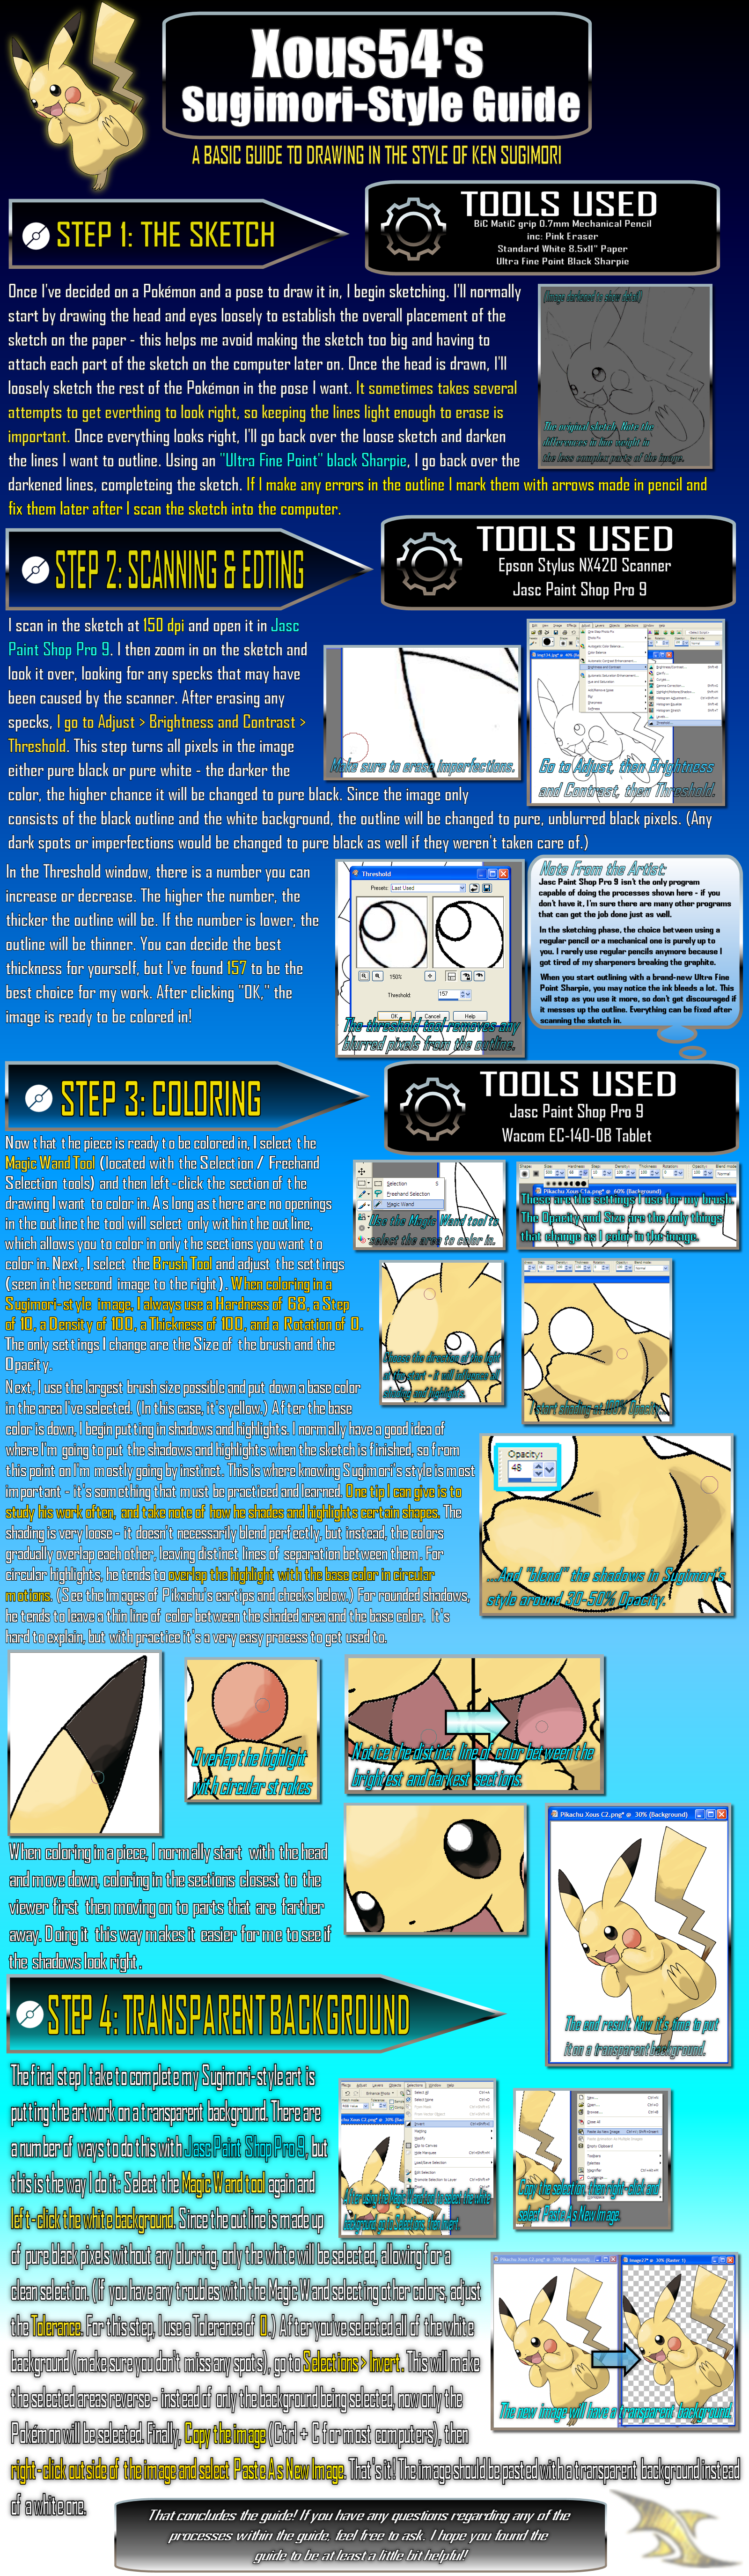 Sugimori Style Guide 2 by Xous54